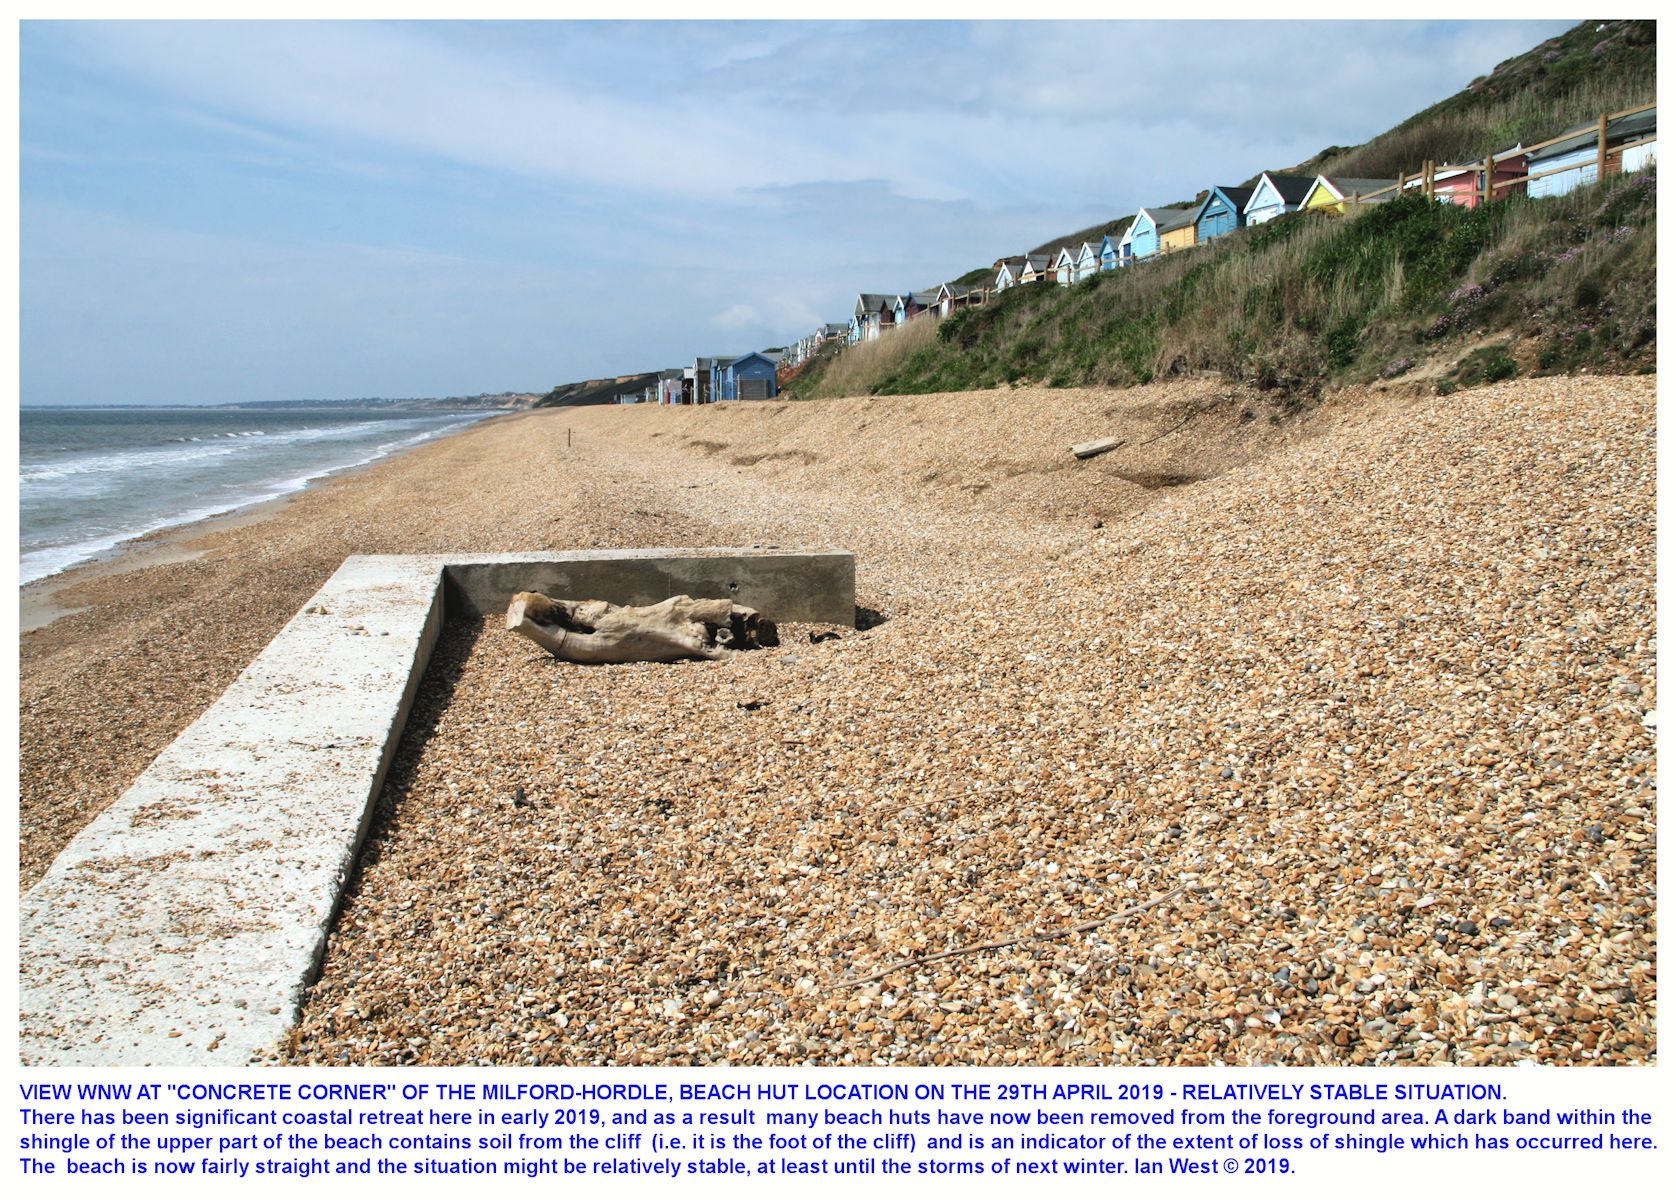 After several storms, by the 29th April 2019, the beach at Milford-Hordle car park, just east of Hordle Cliff, is now fairly uniform and probably relatively stable for the present, but there has been retreat and several beach huts have now been removed from this location